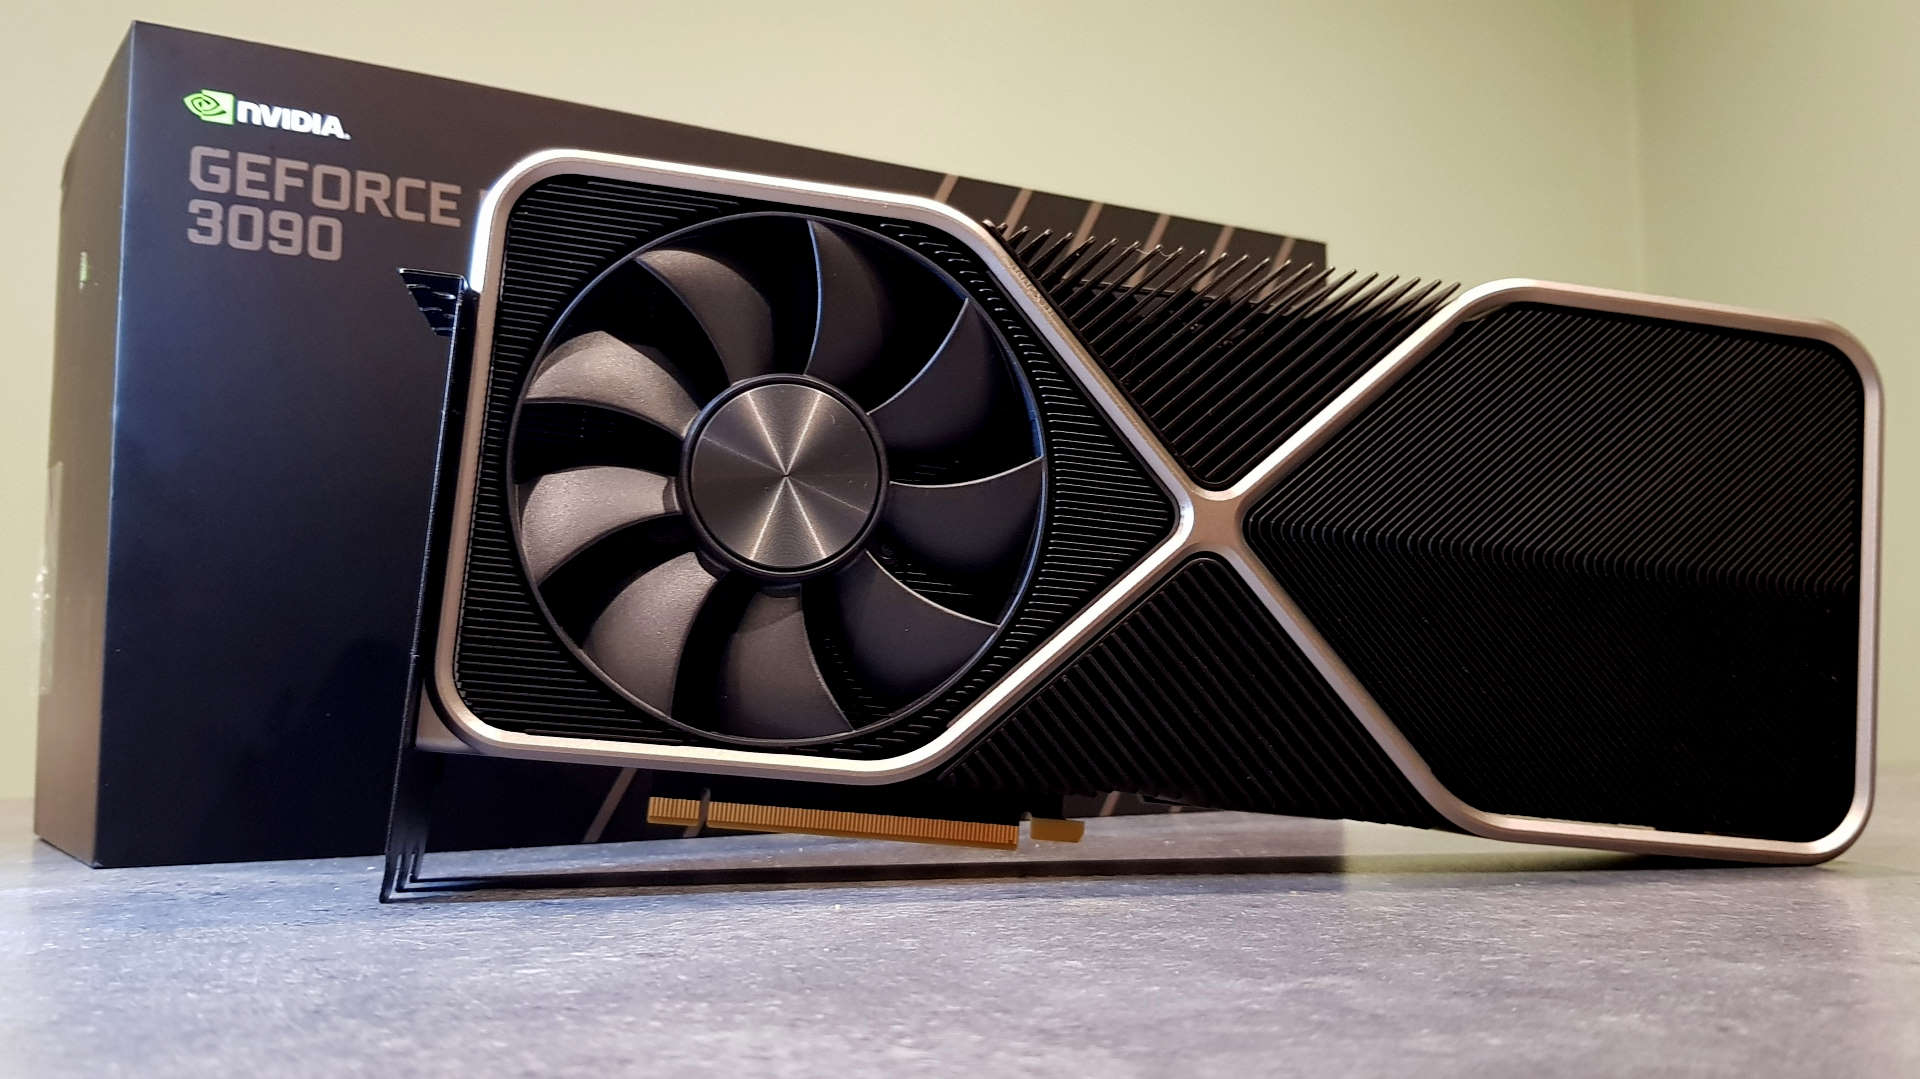 Nvidia GeForce RTX 3090 Founders Edition graphics card shot on a grey tabletop in front of its packaging